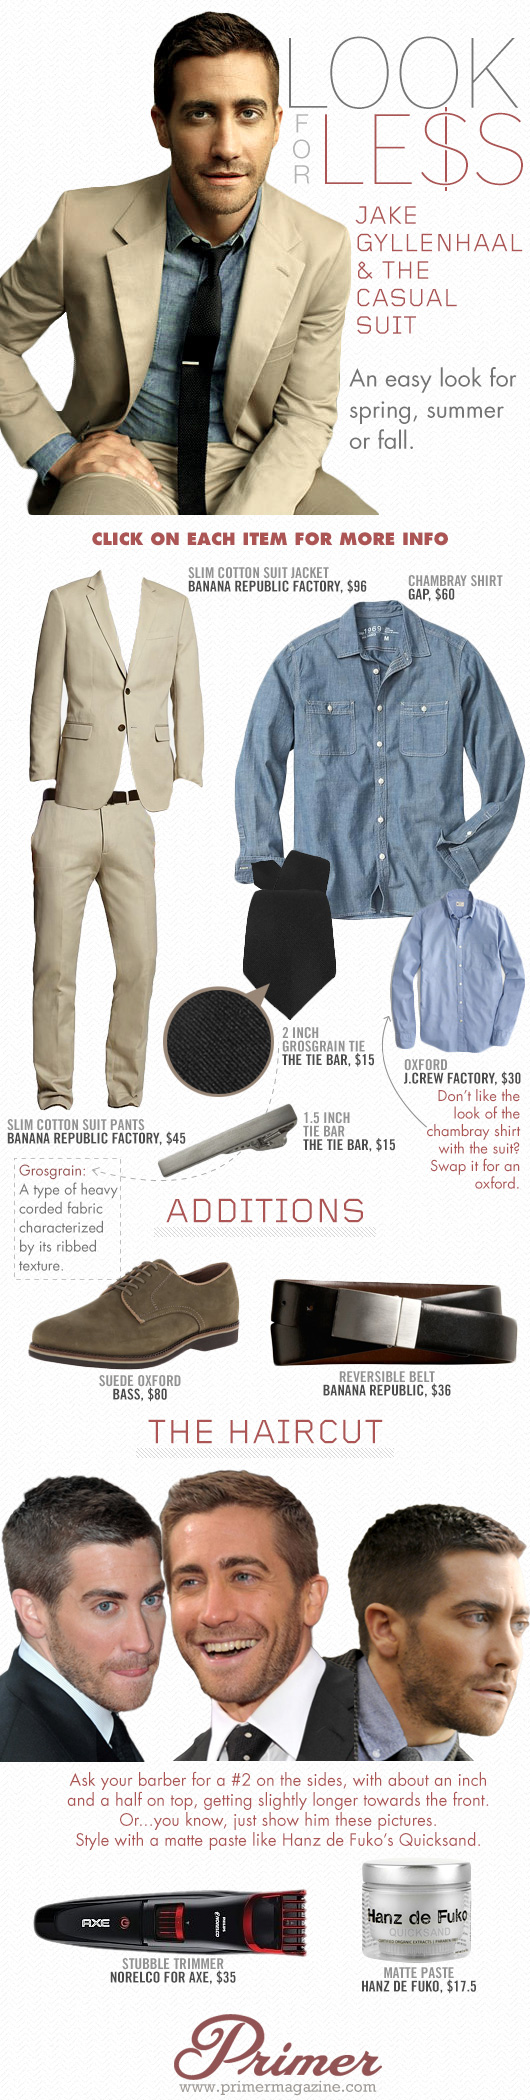 Jake Gyllenhaal Look for Less - Tan suit, blue shirt, brown shoes